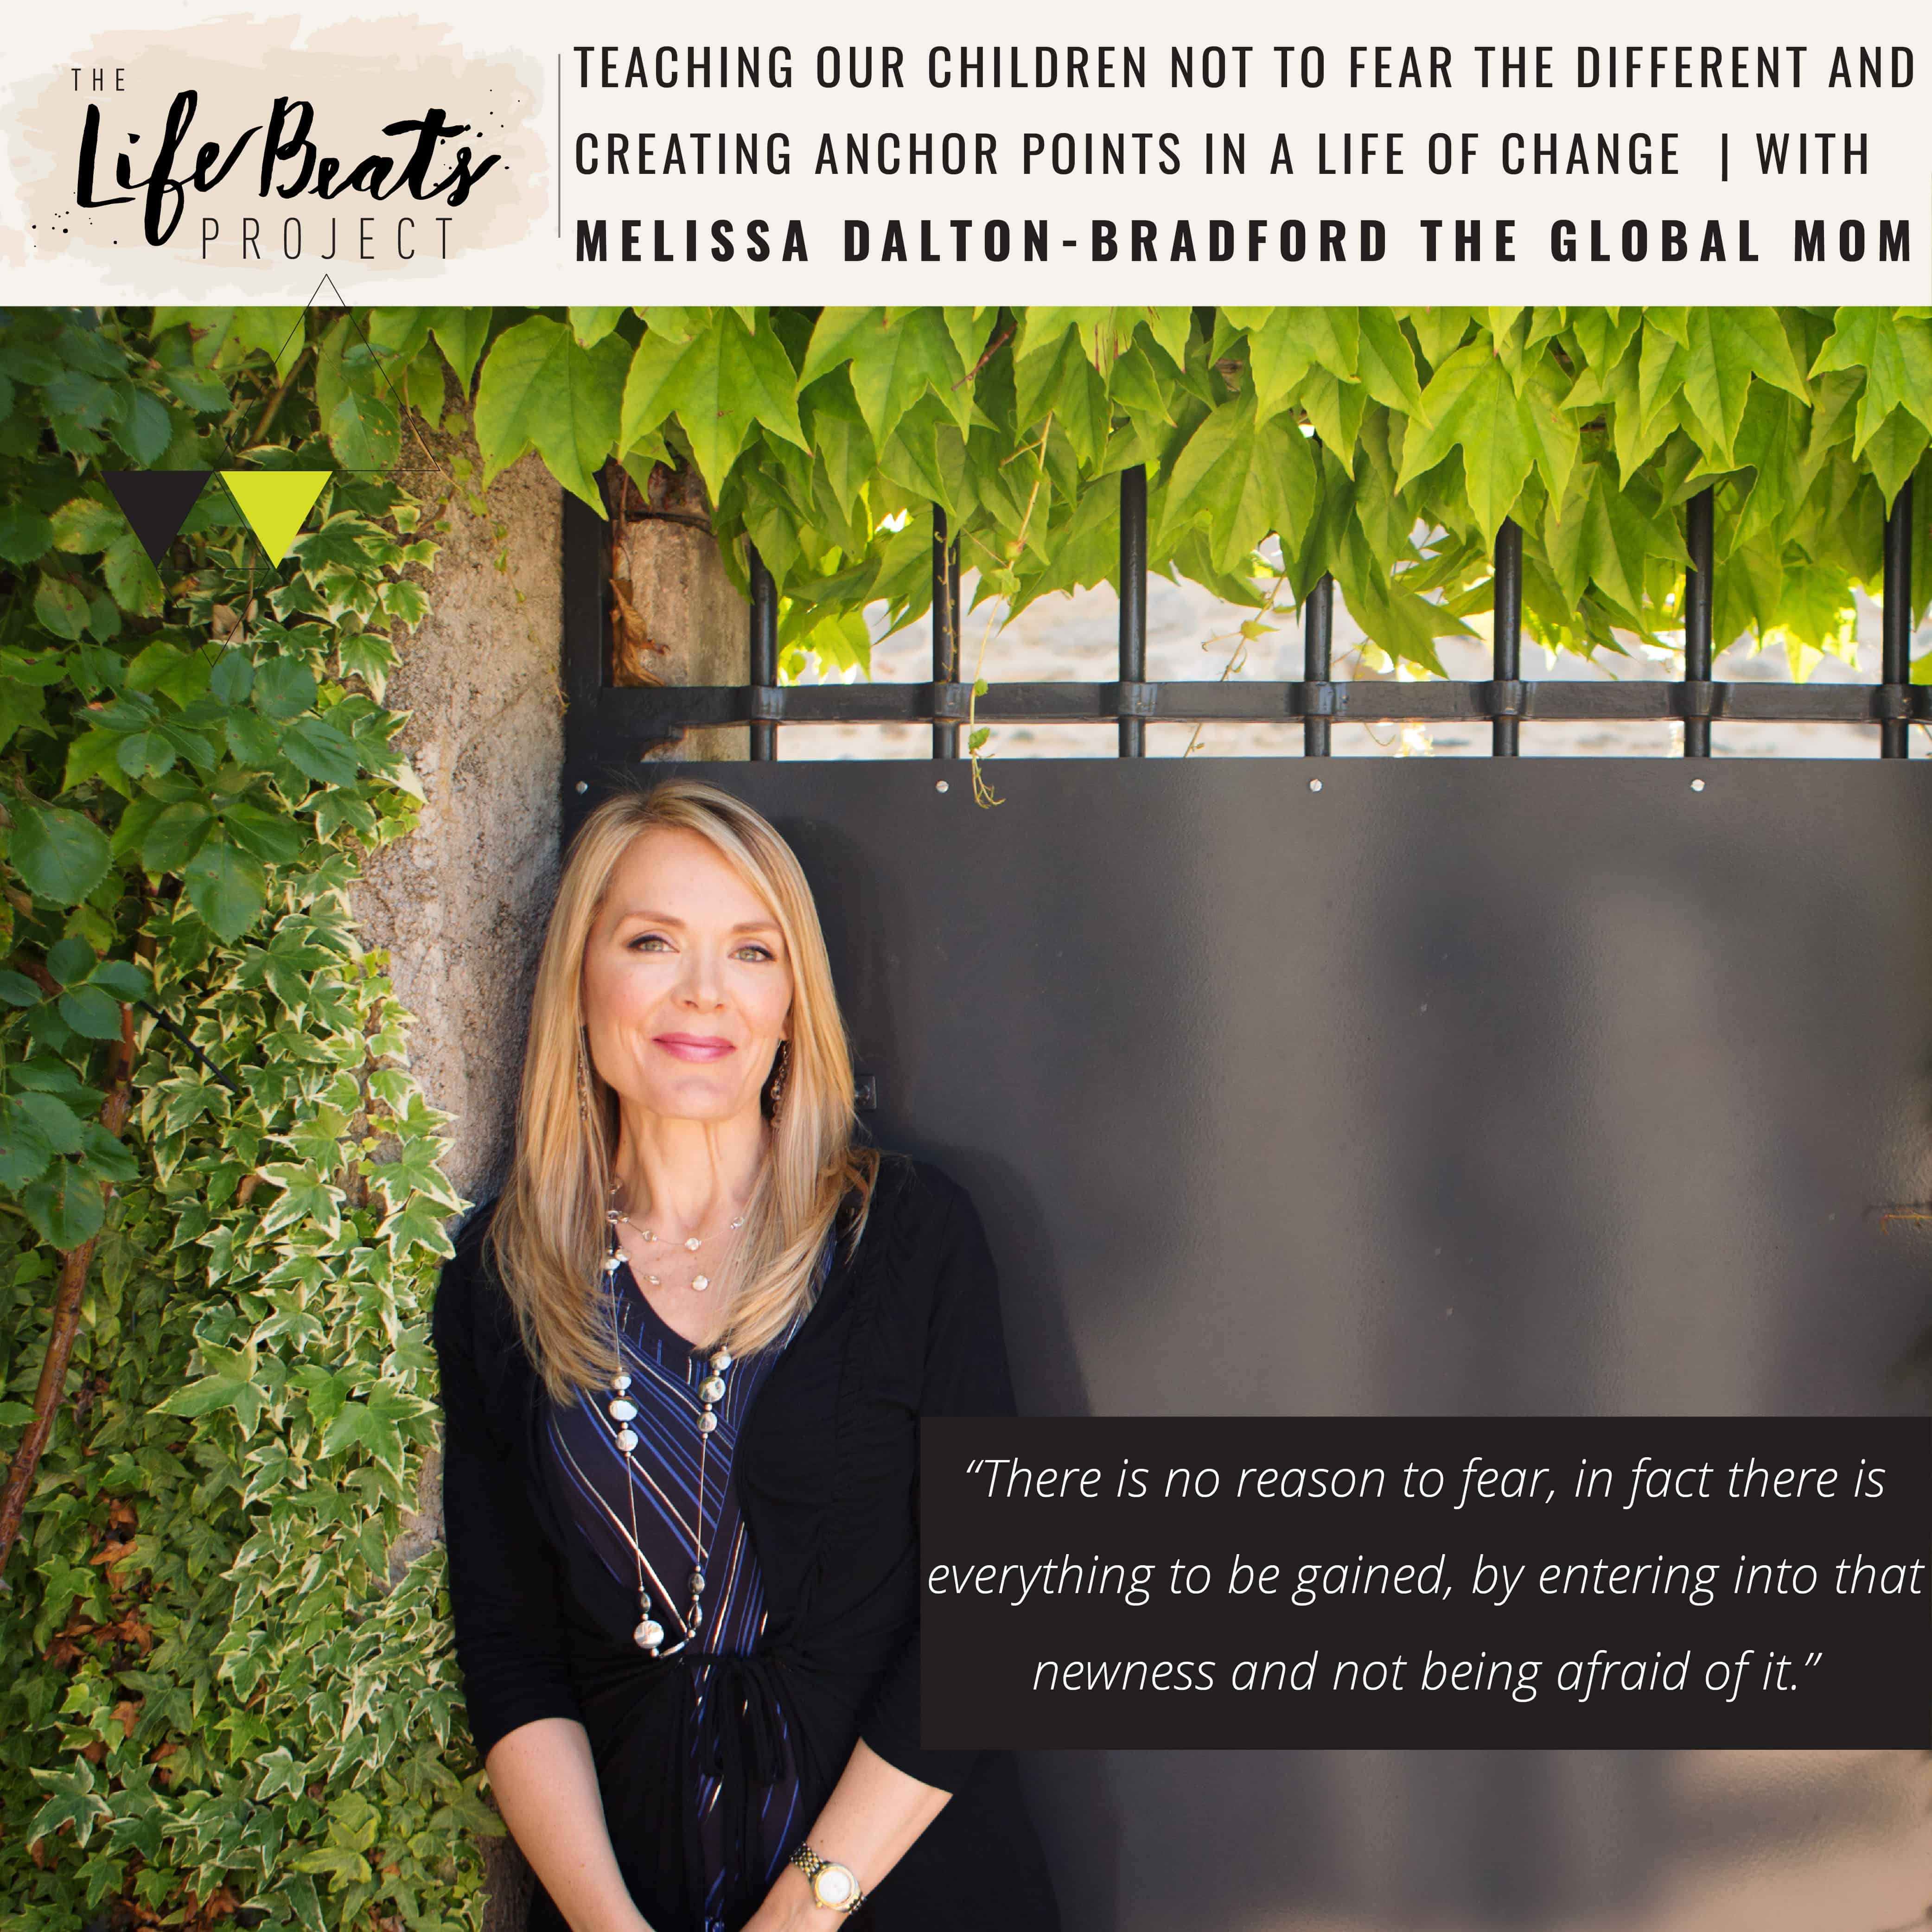 global family international education parenting embrace different loss grief family dinner table podcast LifeBeats Melissa Dalton-Bradford Global Mom